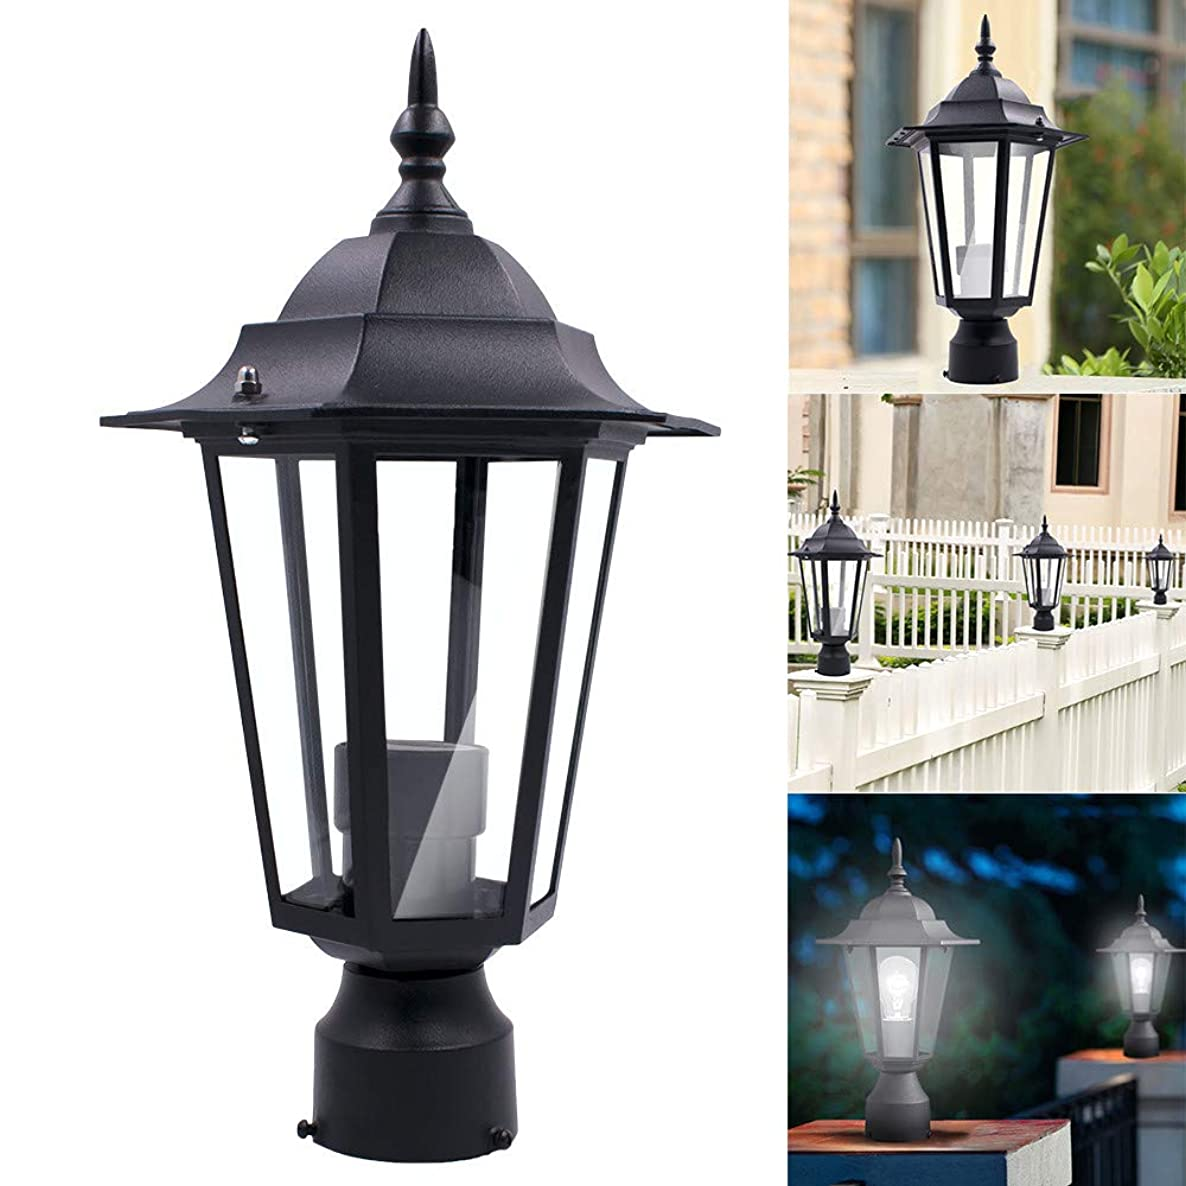 Eoeth Lamp Shade, Post Pole Light Outdoor Garden Patio Driveway Yard Lantern Lamp Fixture Outdoor Post Lighting for Courtyard, Balcony,Lighting Accessory (Shipped by US) Free Post